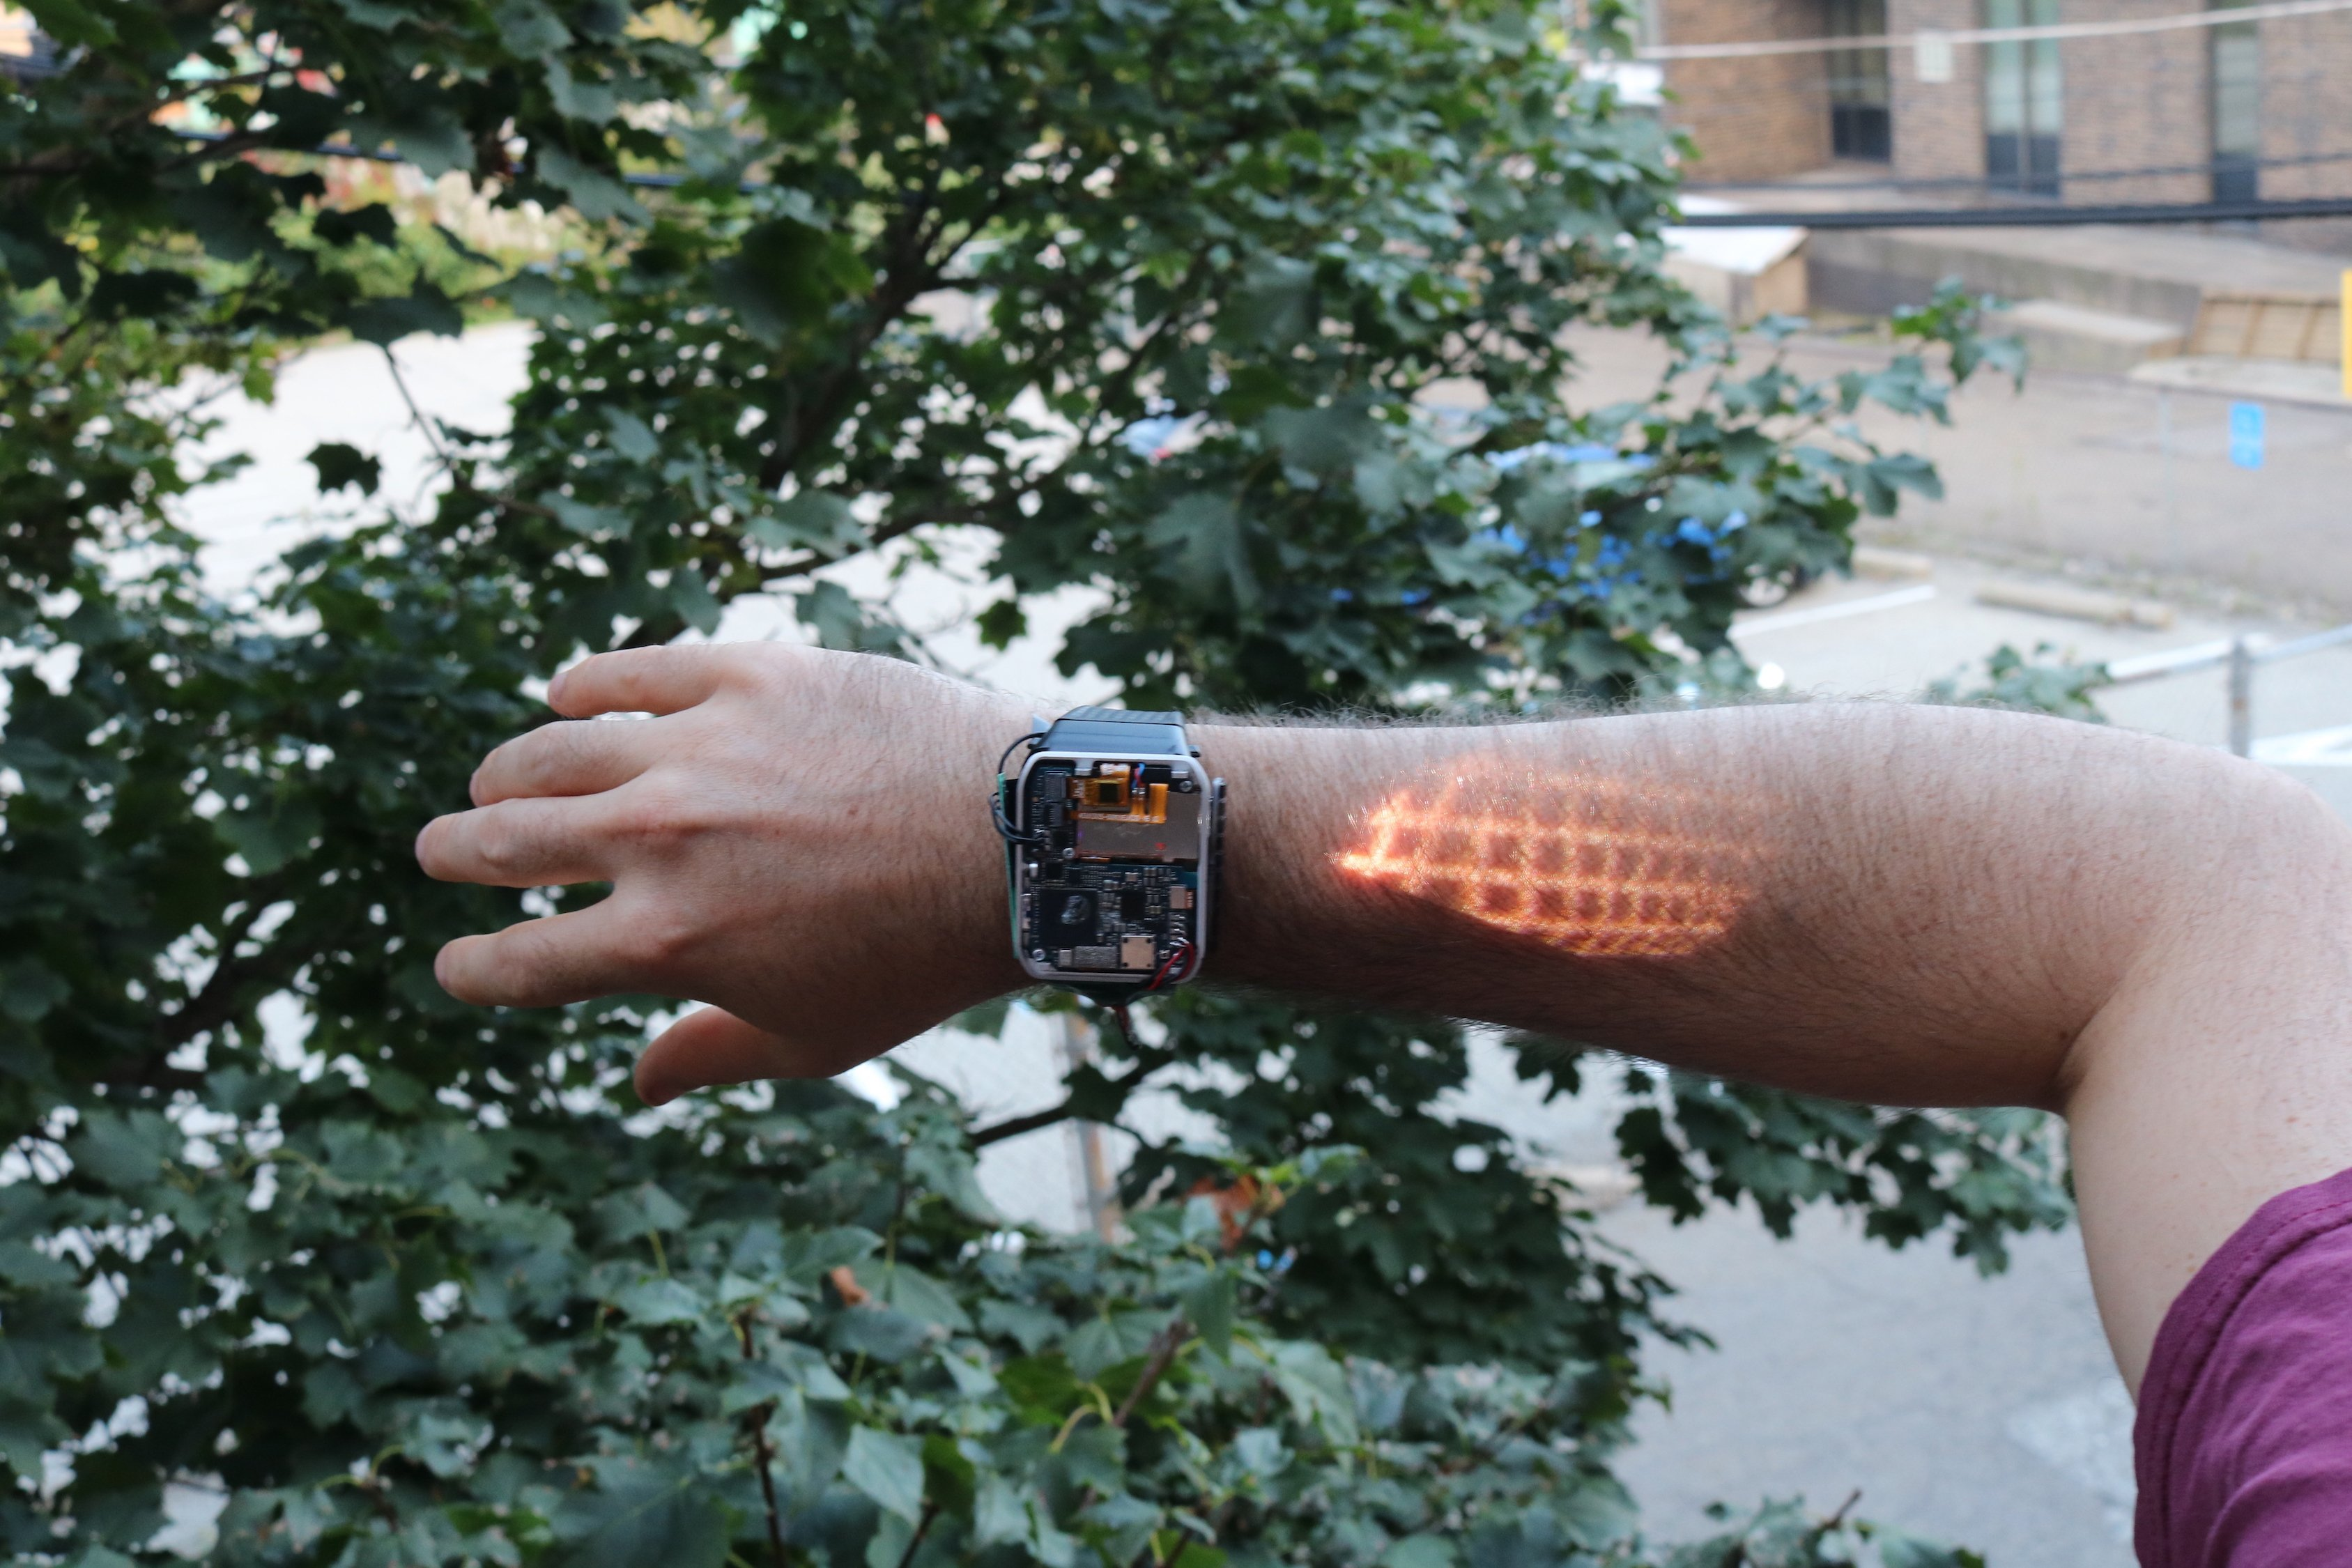 De Lumi Watch projecteert een touchscreen op je arm